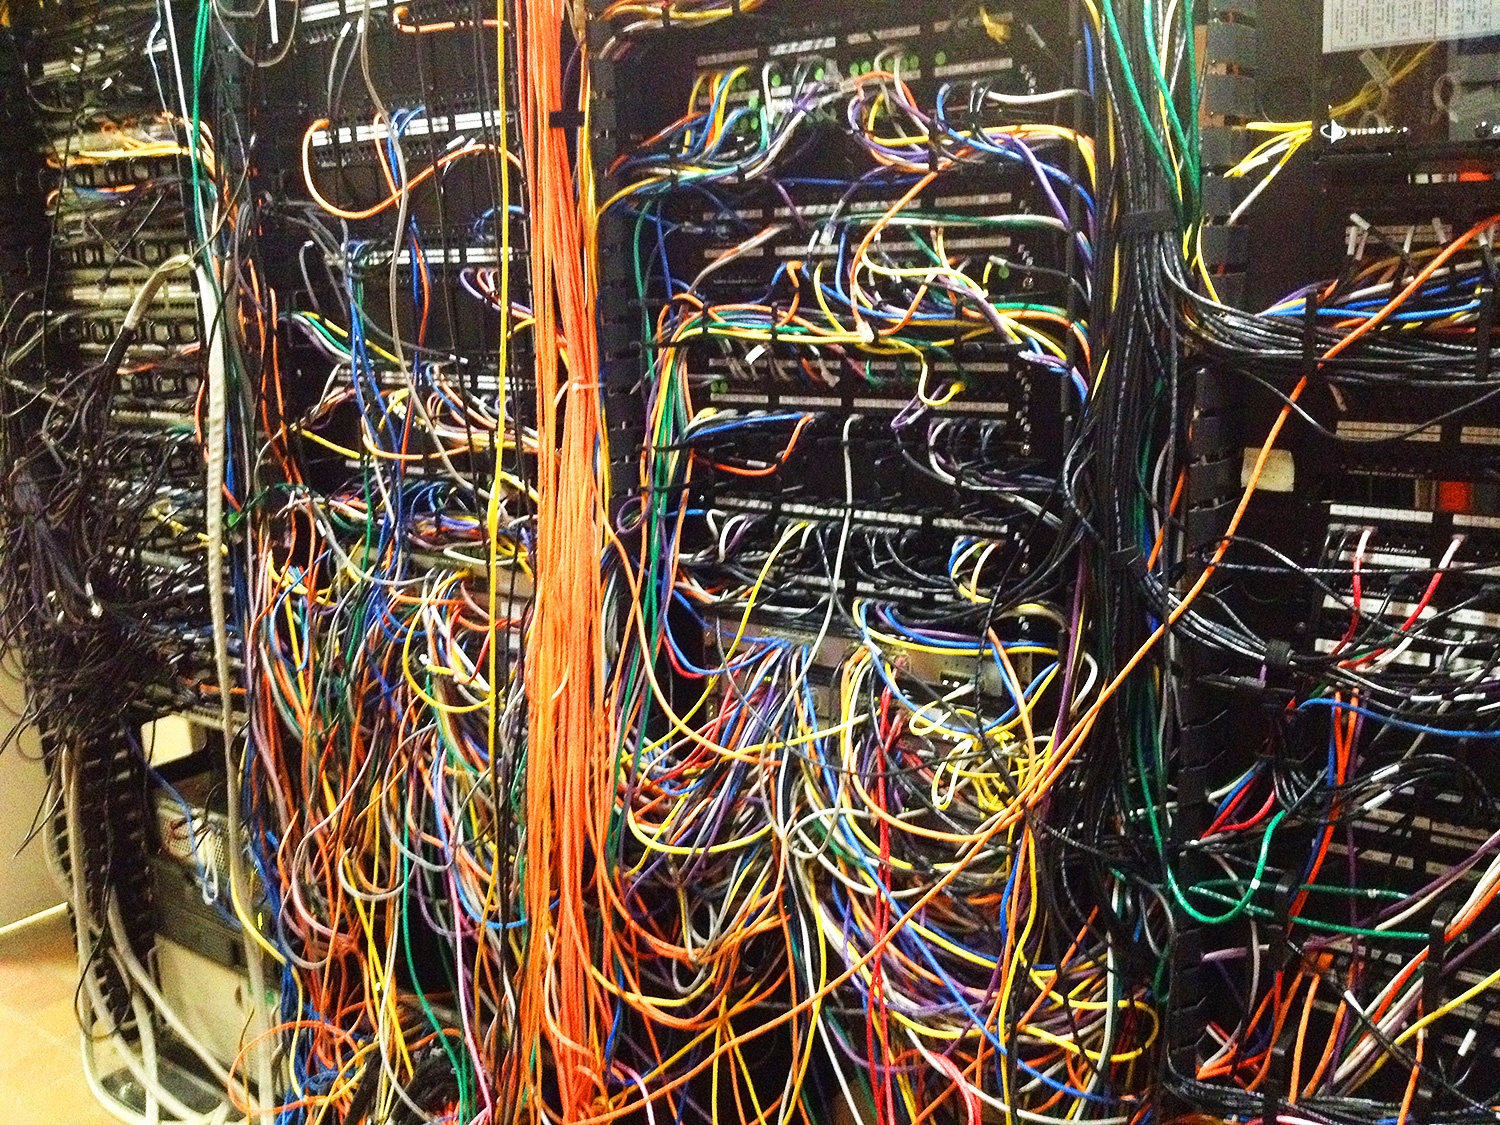 hight resolution of spaghetti wiring mess free wiring diagram for you u2022 network wiring mess network wiring mess